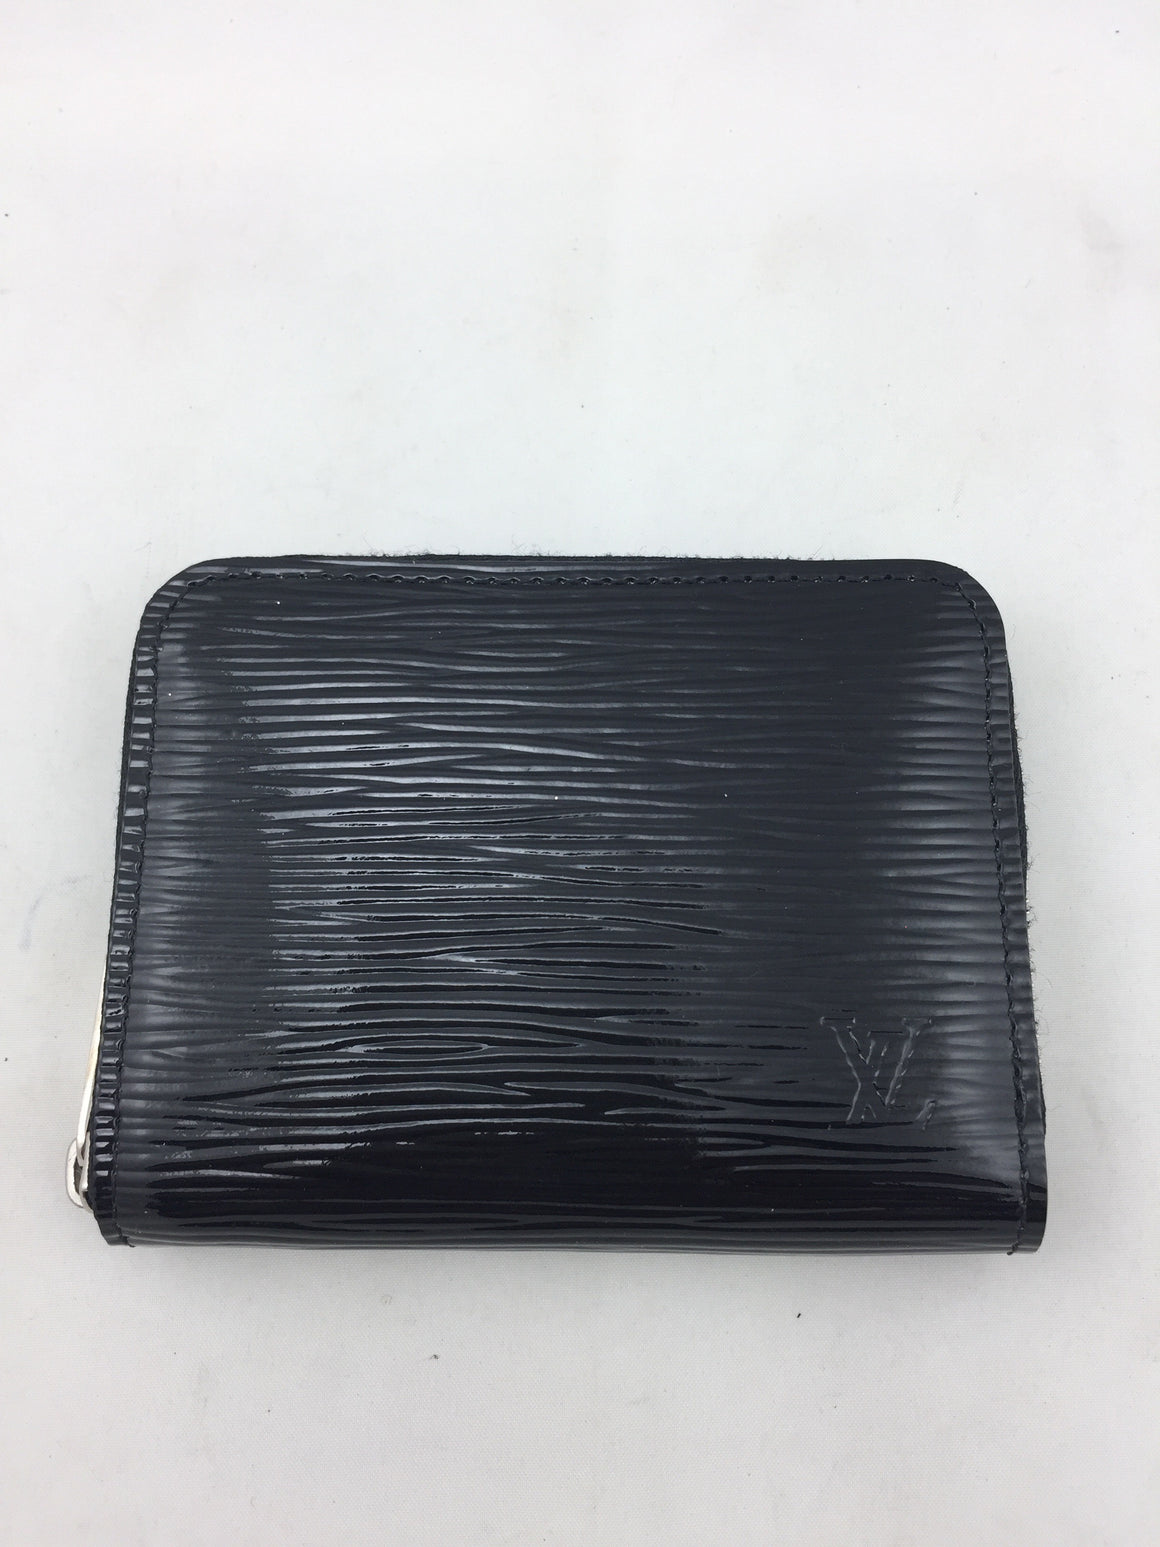 Louis Vuitton Black Epi Small Wallet! - New York Authentic Designer - Louis Vuitton